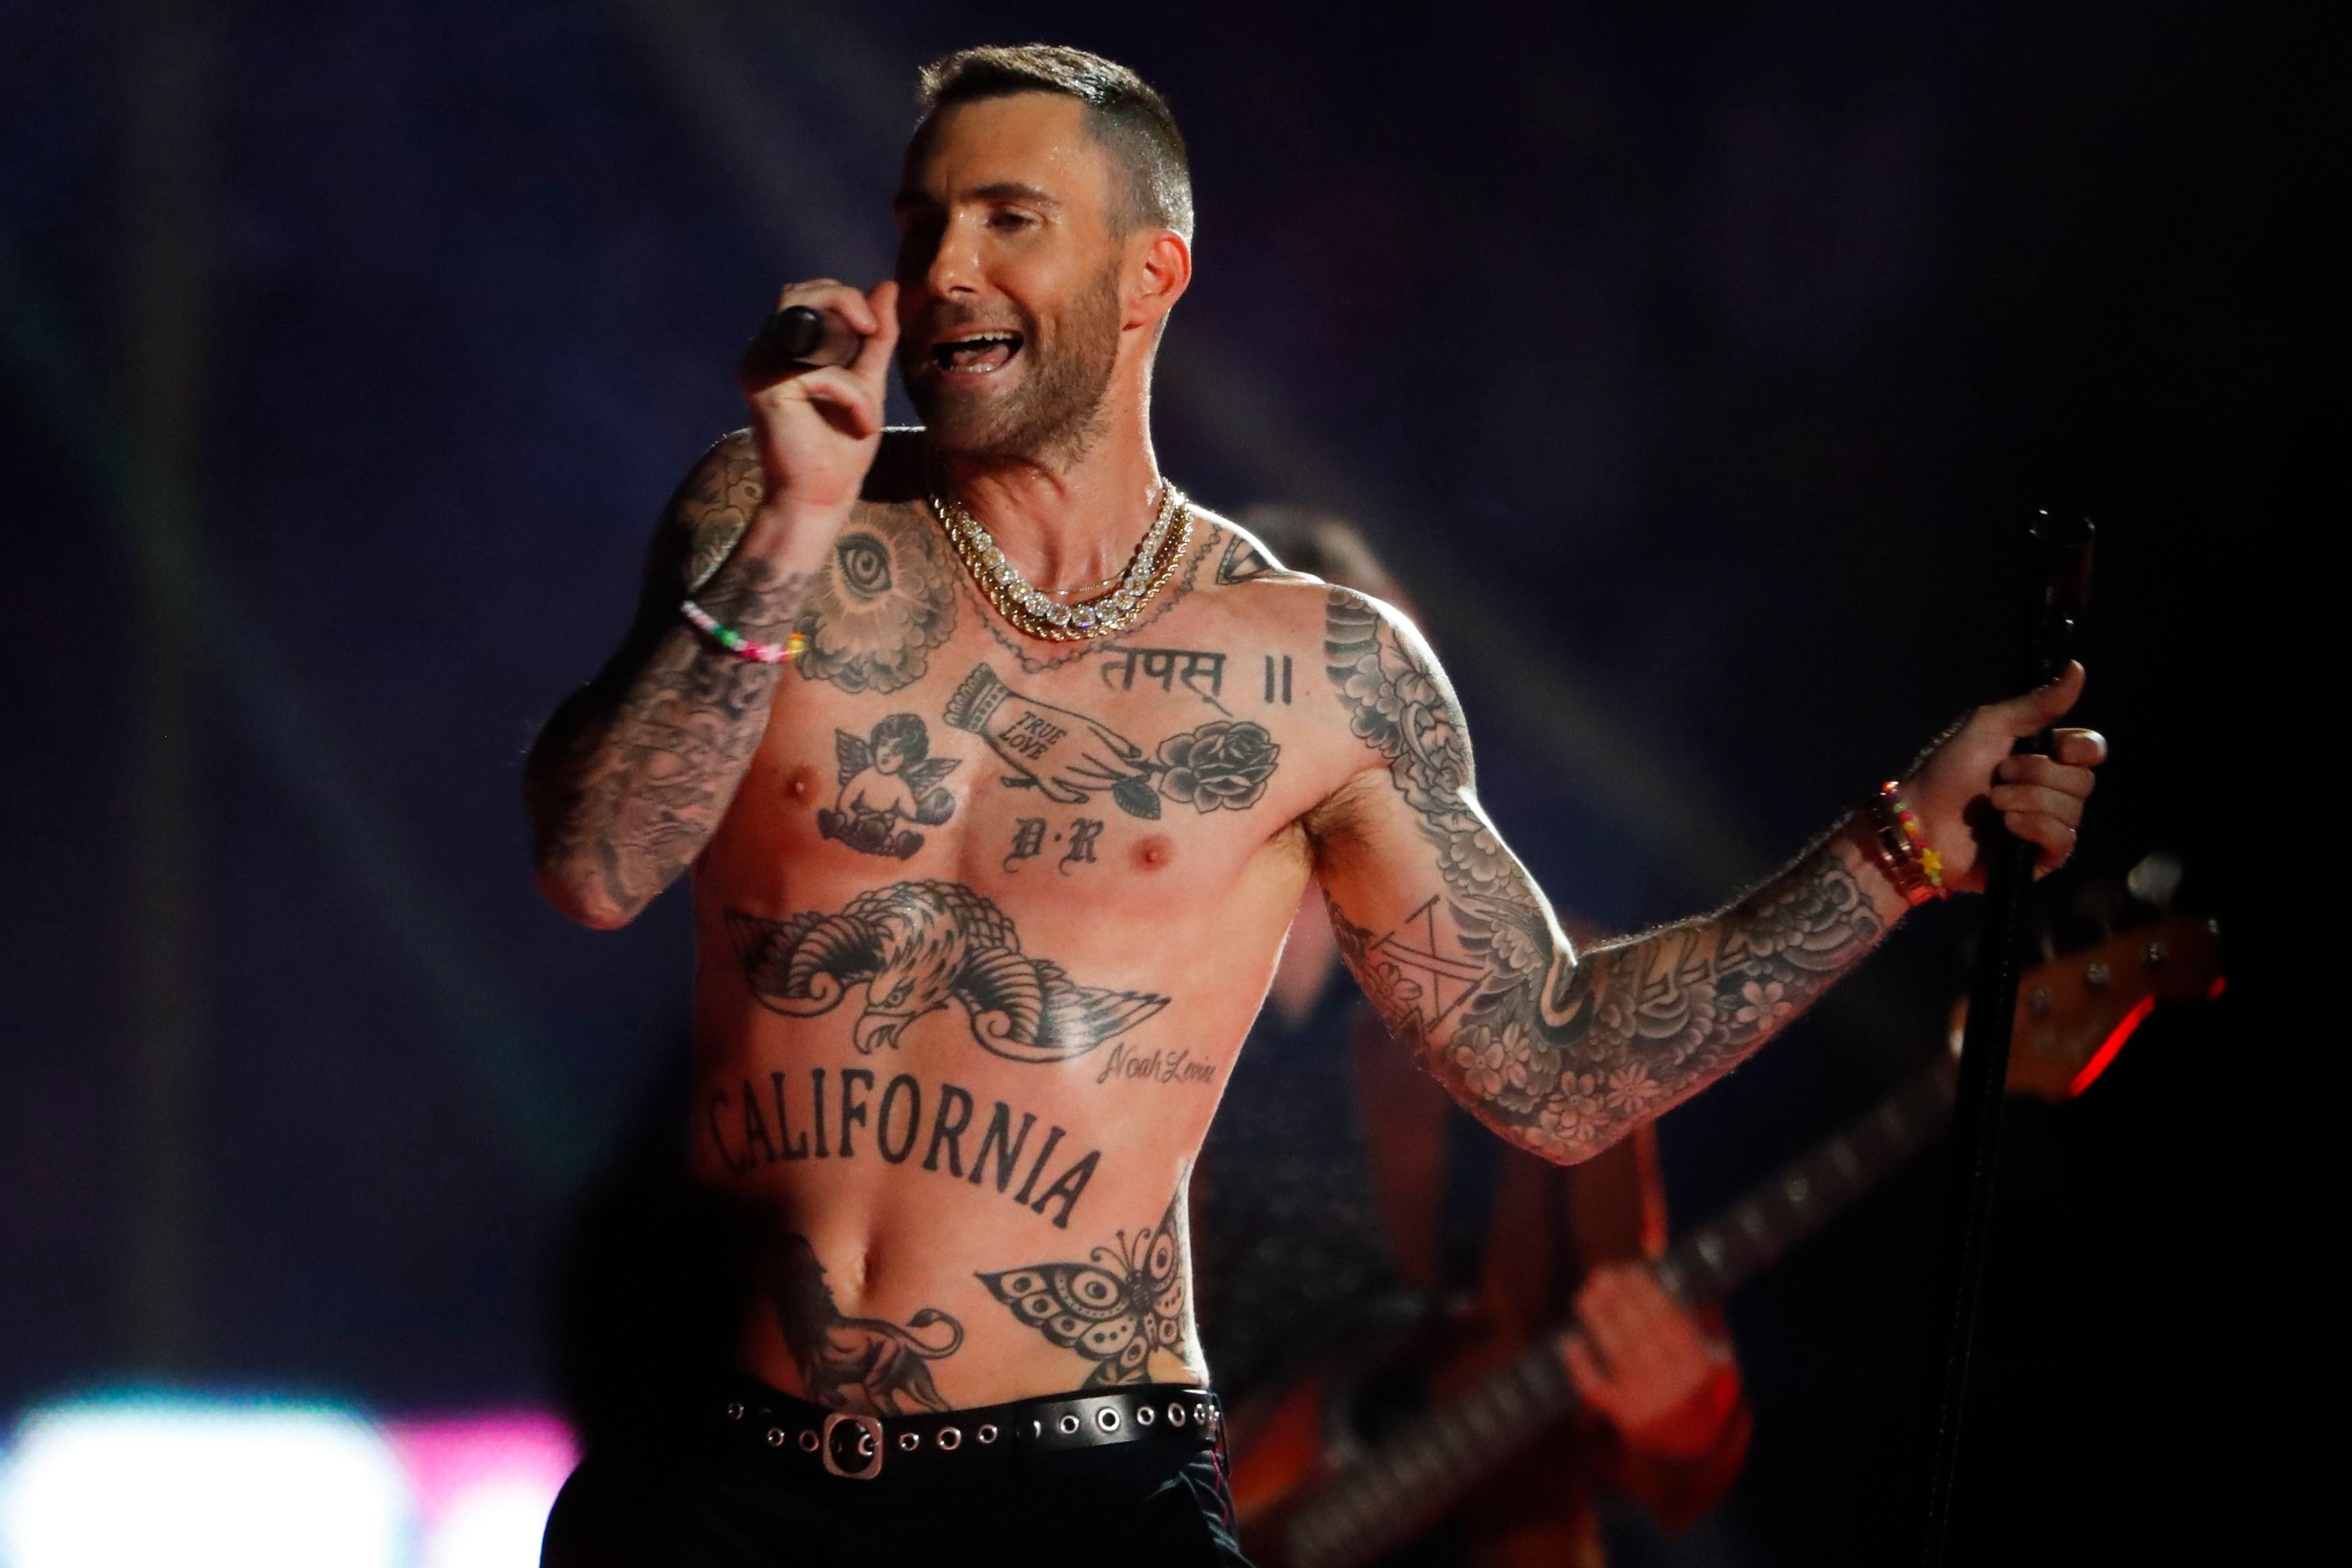 Maroon 5 Super Bowl Halftime Show: 5 Important Questions with Maroon 5 Super Bowl